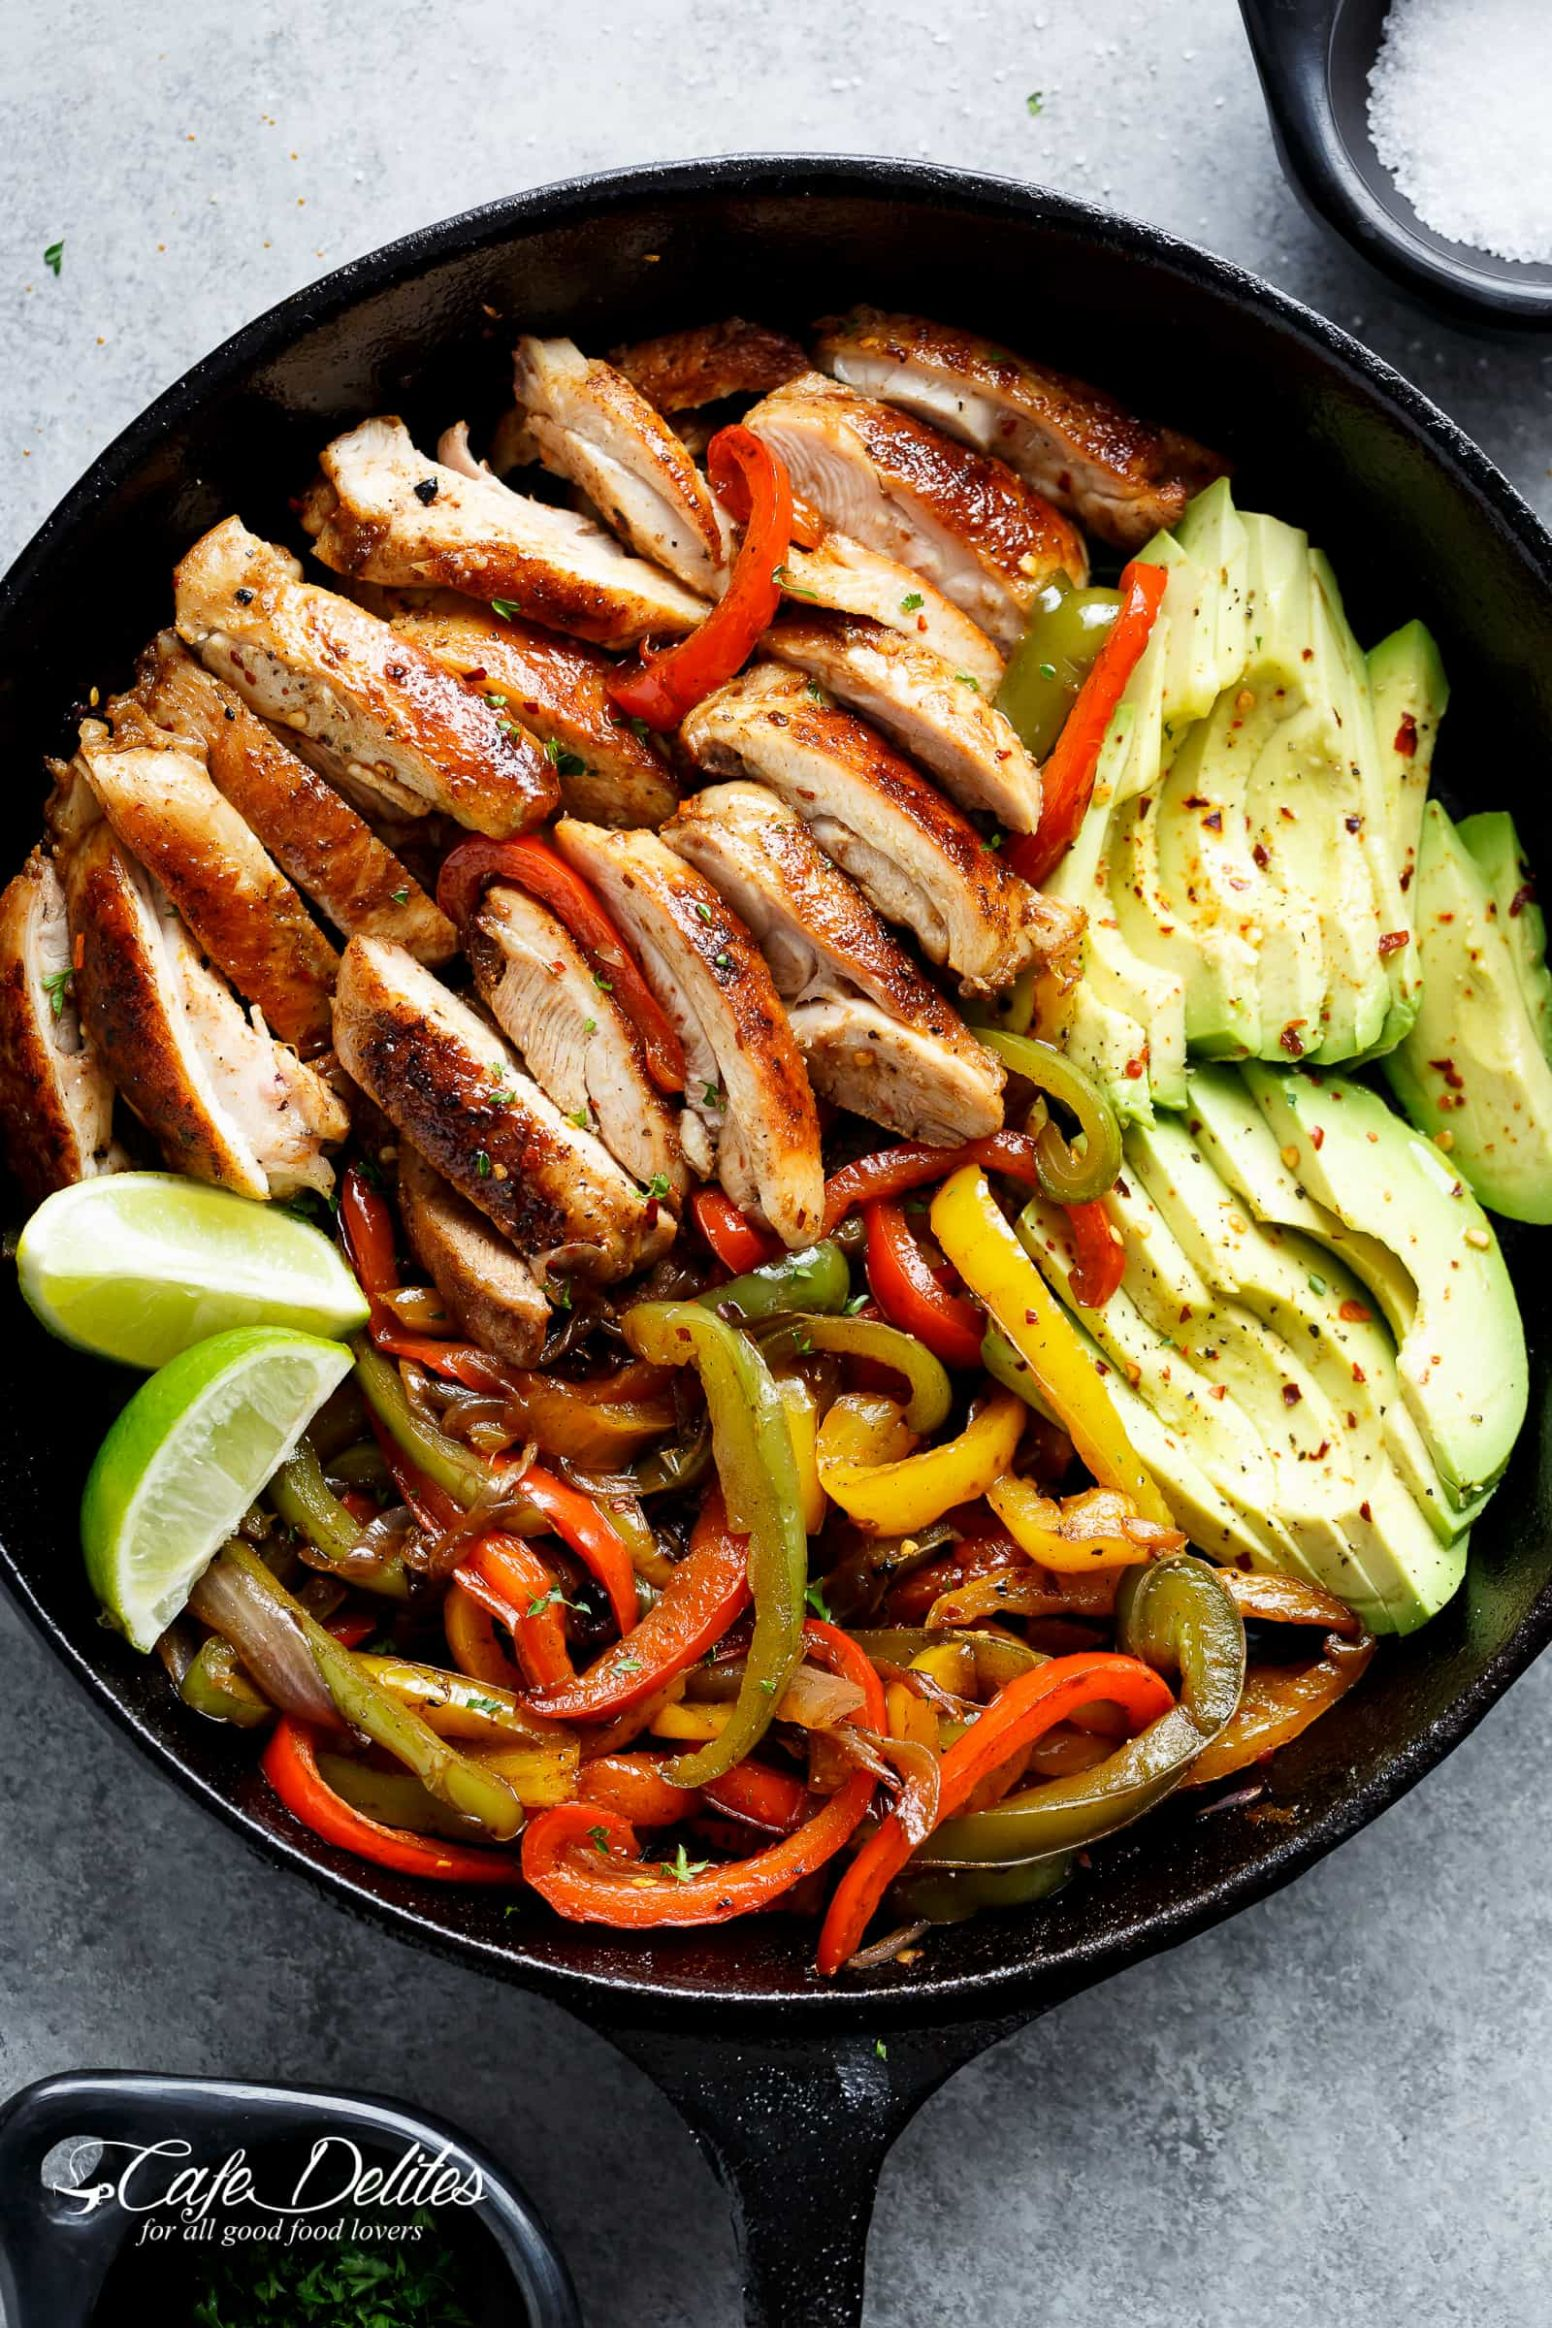 Best Chicken Fajitas - Cafe Delites - Recipes Chicken Breast Bell Peppers Onions